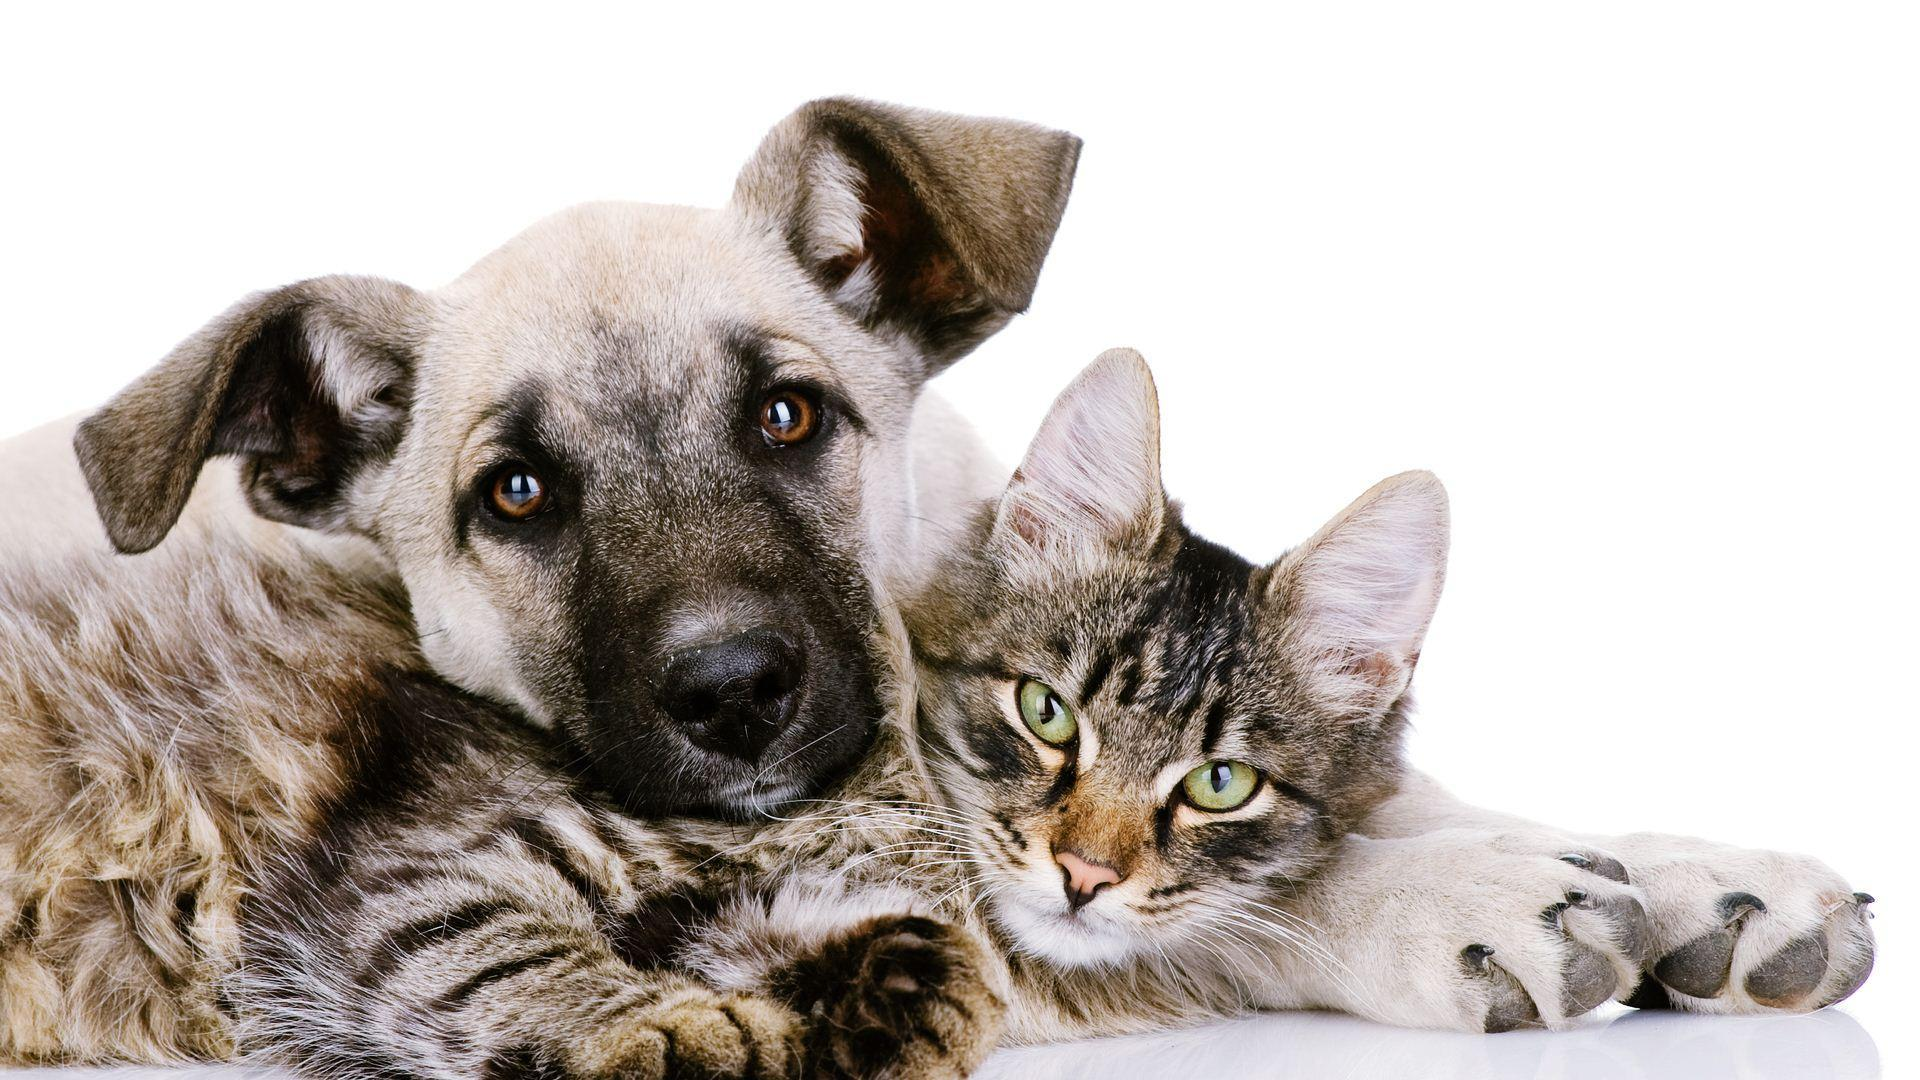 Cat And Dog Wallpapers 1920x1080